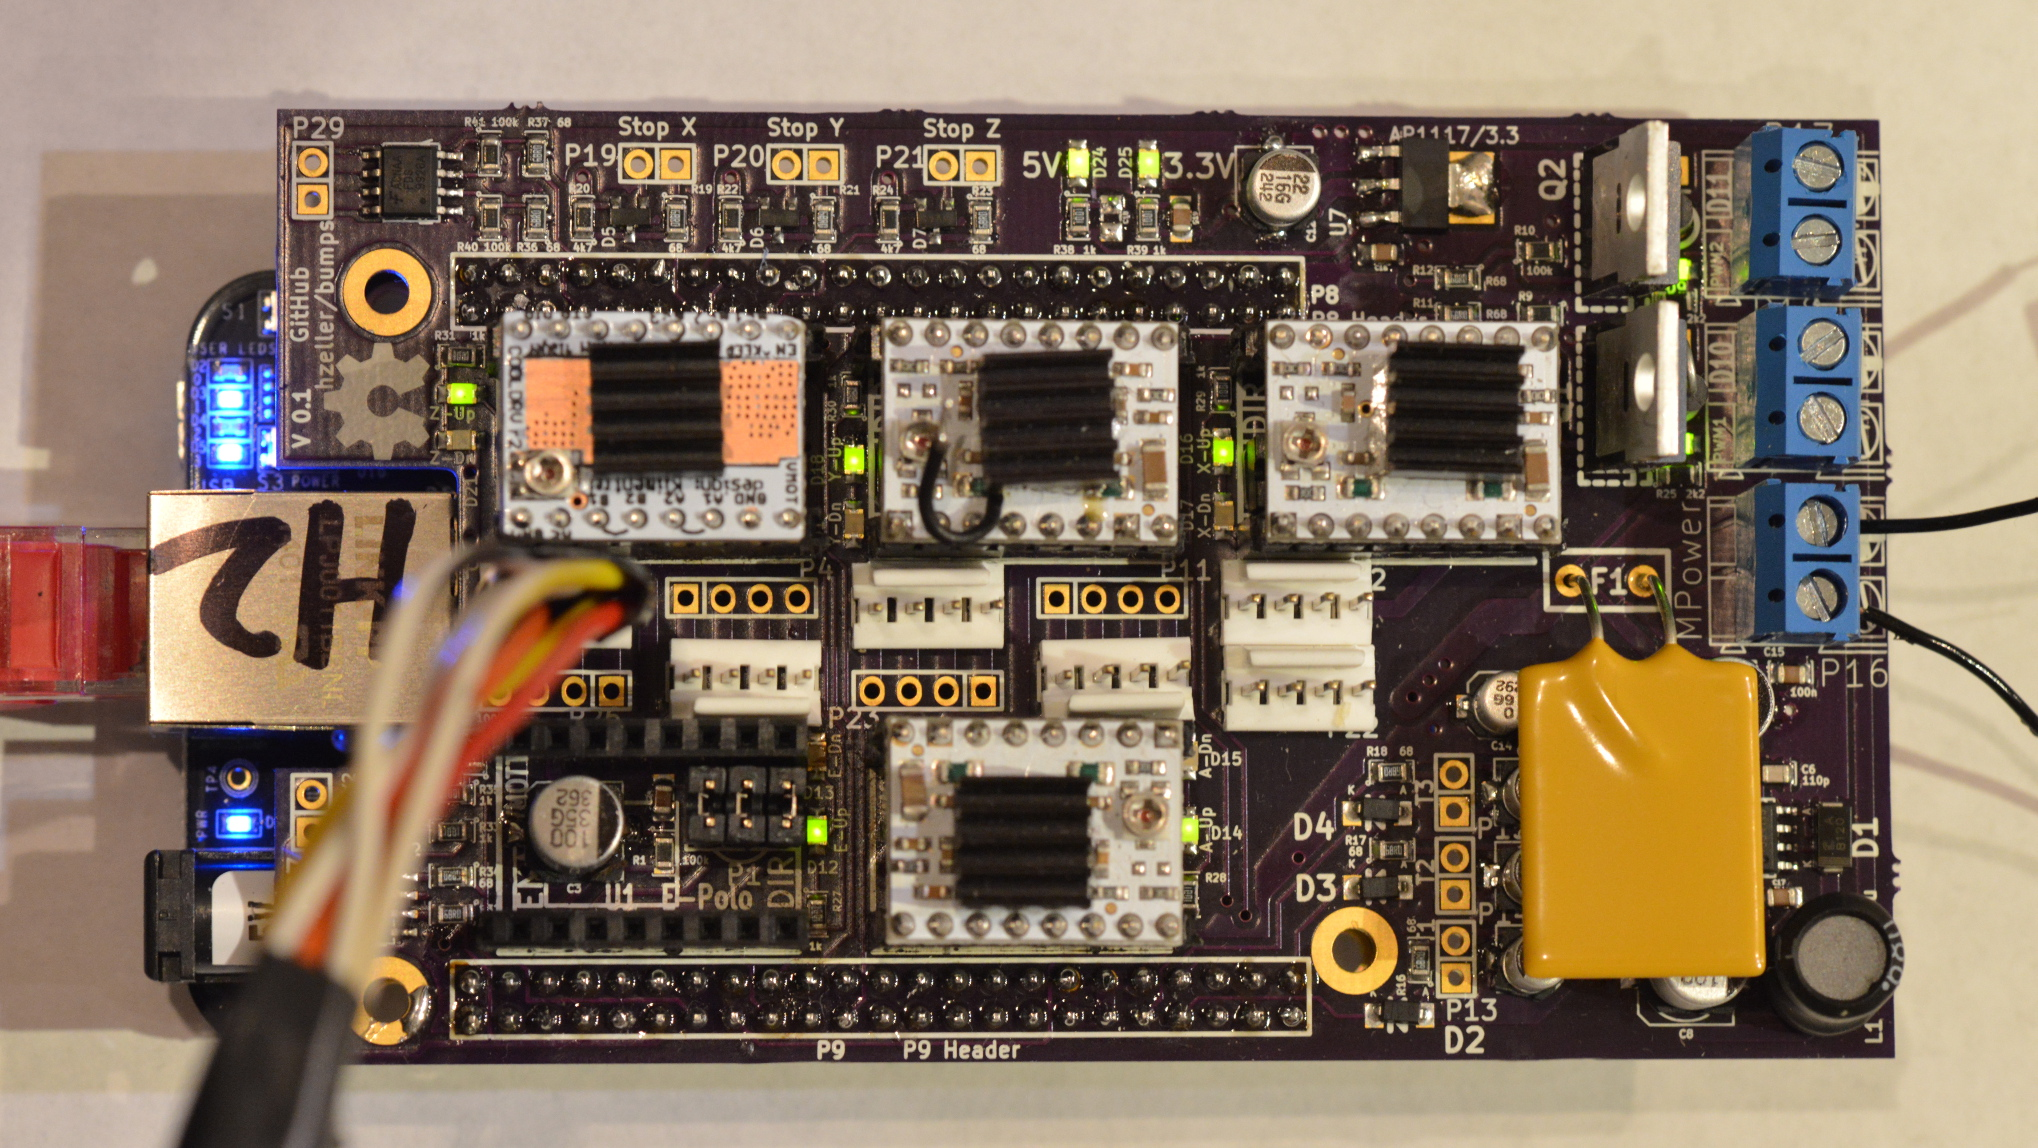 Machinekit Blog: BeagleBone Hardware Capes